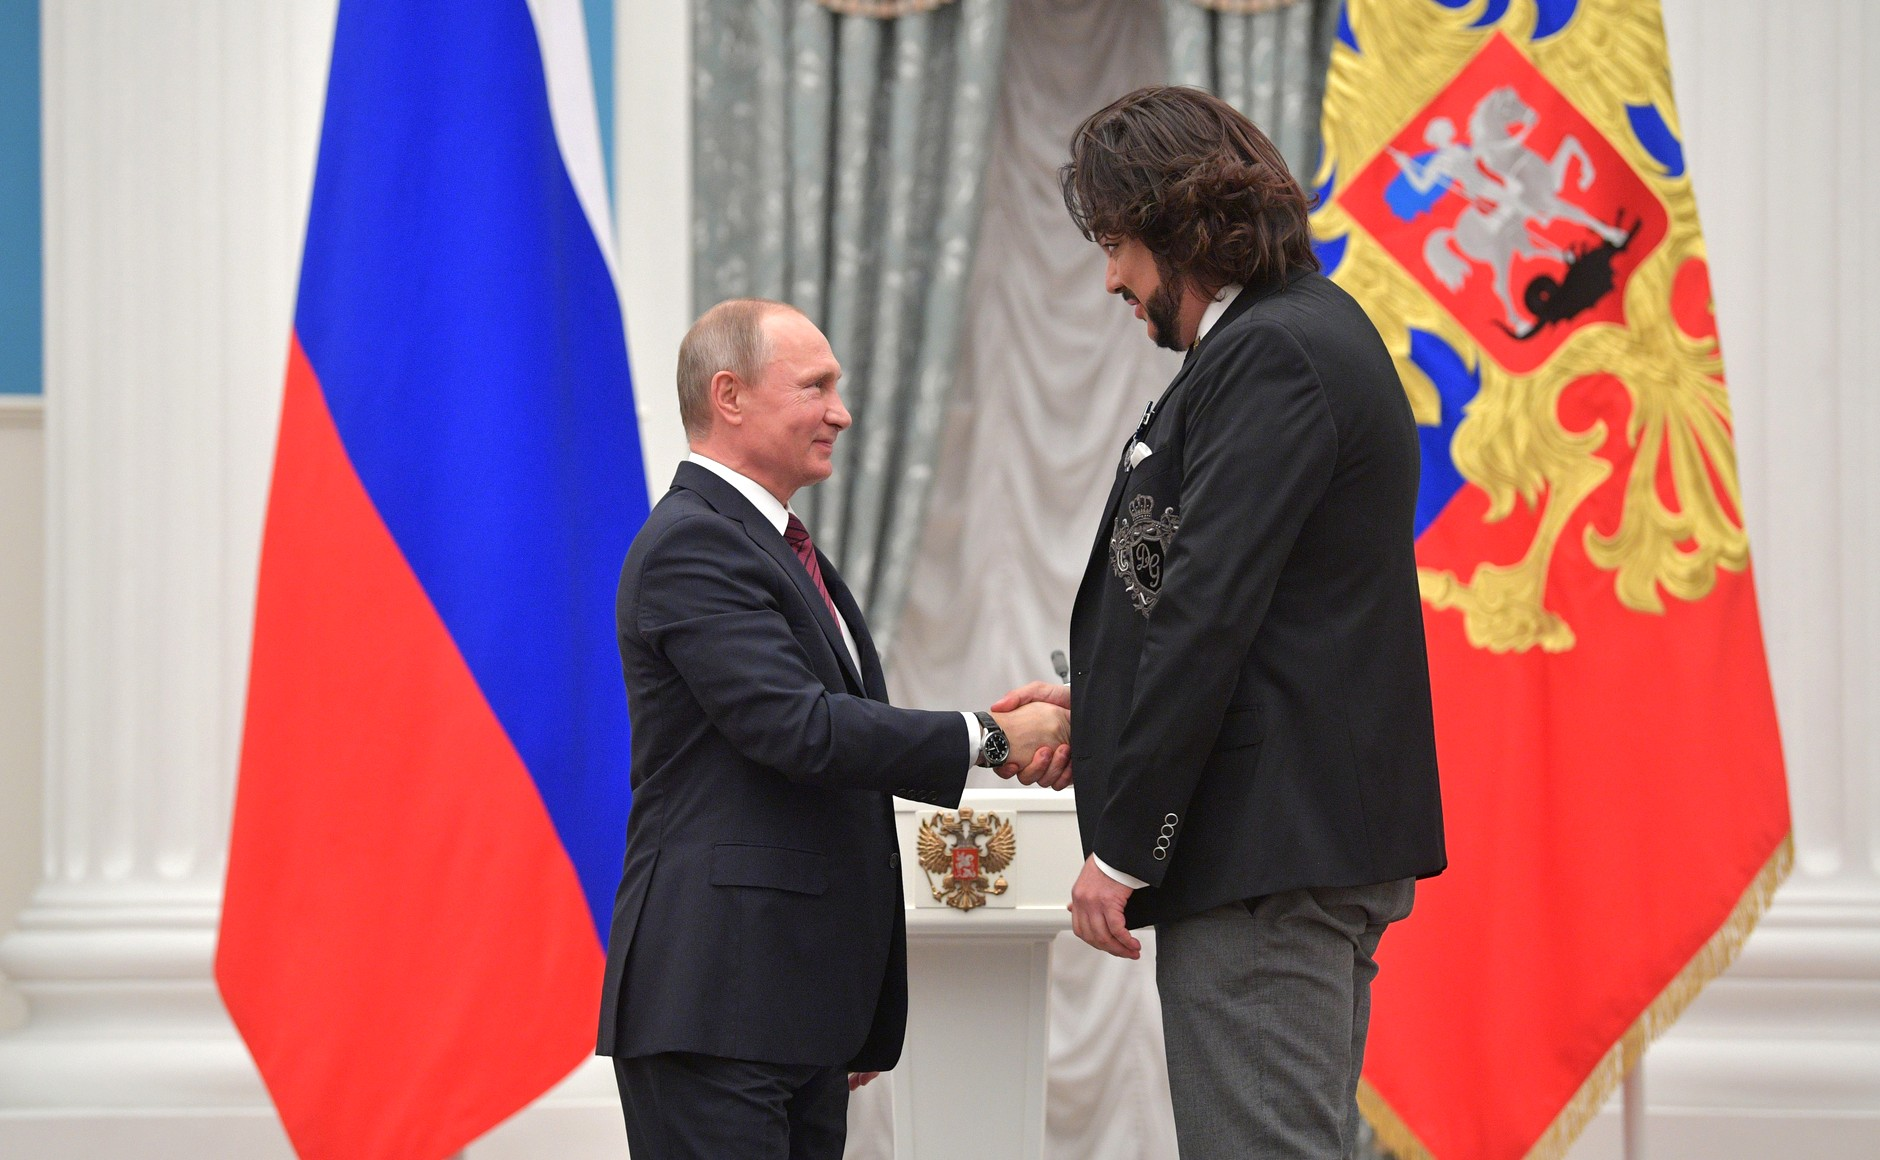 Vladimir_Putin_and_Philipp_Kirkorov_(2017-11-15)